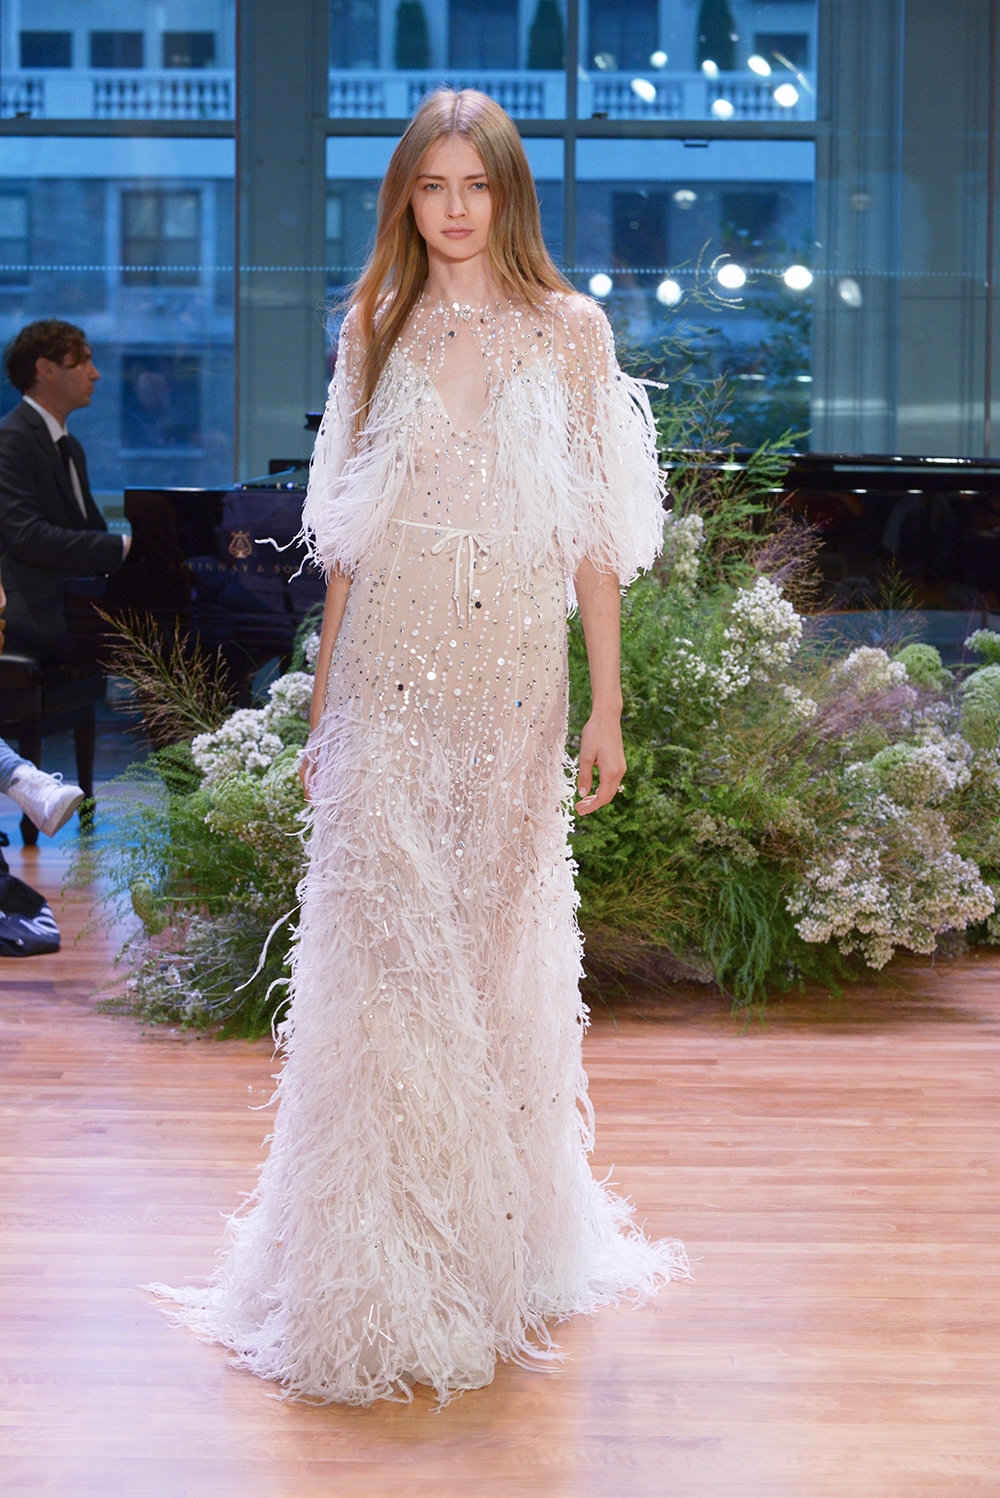 Stardust - Monique Lhuillier Fall 2017 Bridal Collection. www.theweddingnotebook.com